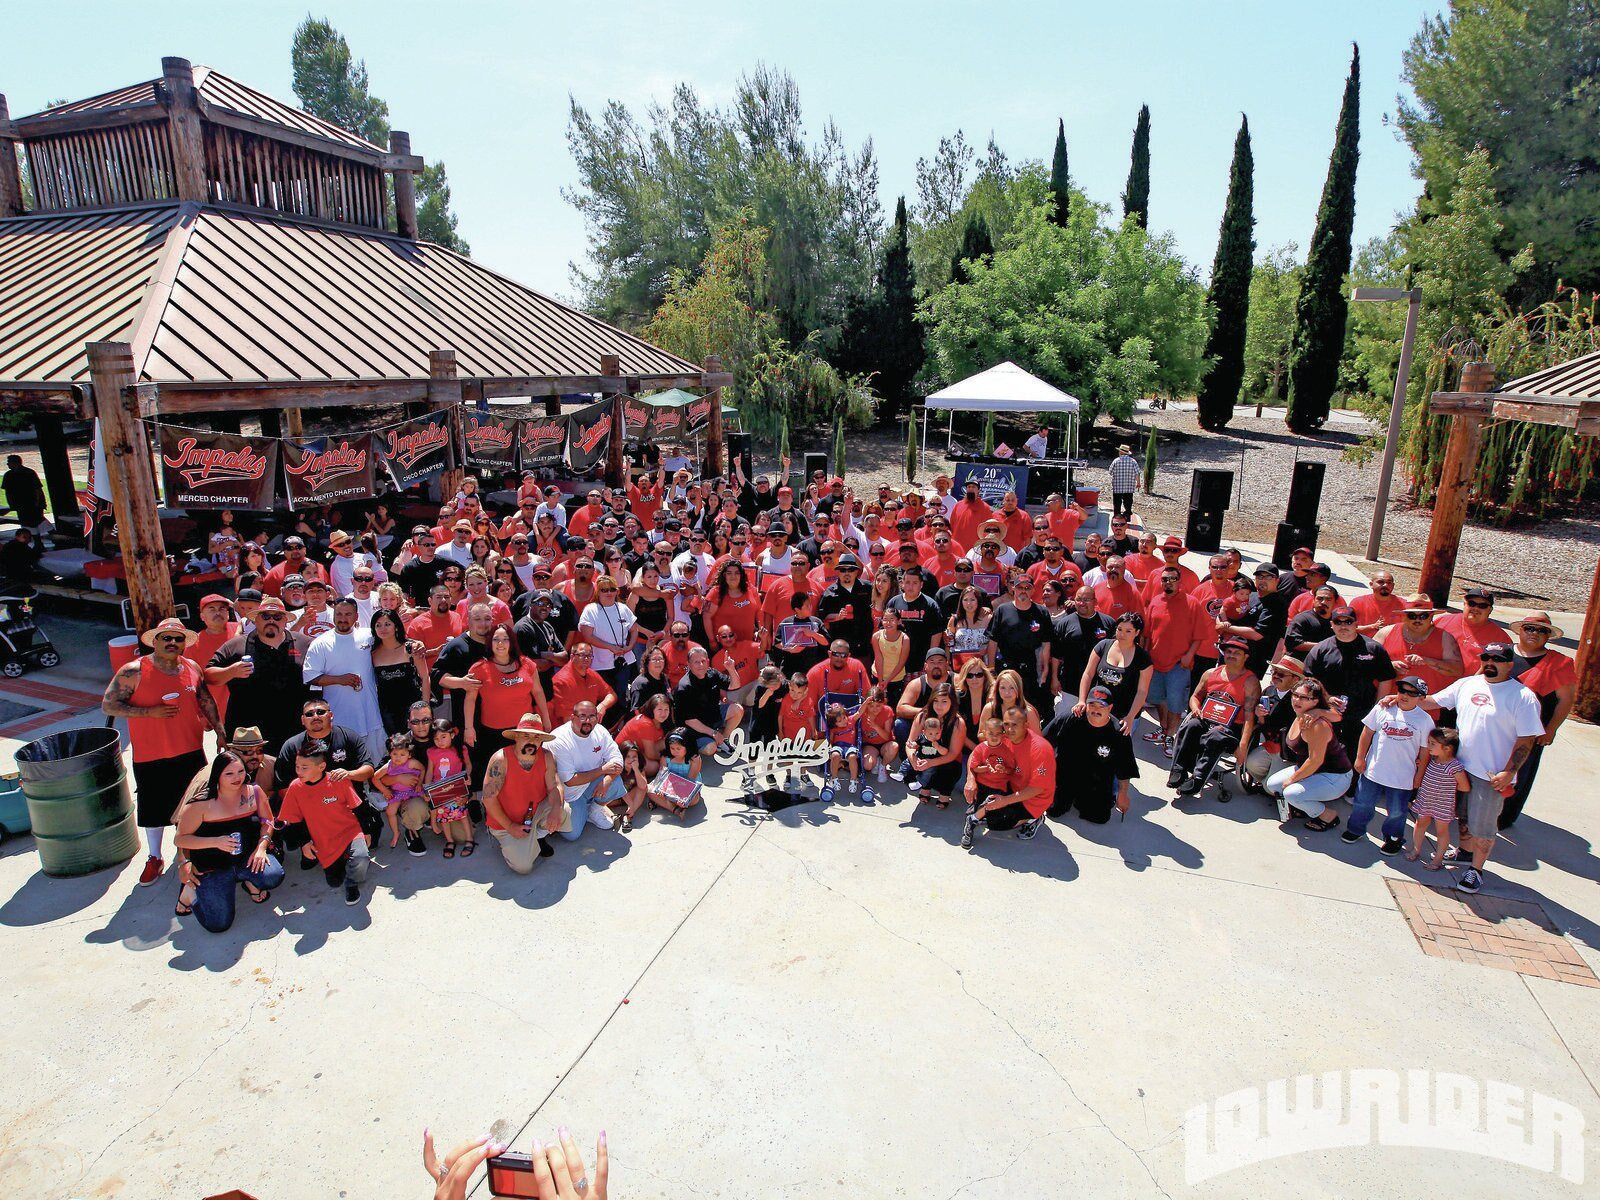 lrmp_1106_01_z-impalas_car_club_20th_anniversary-group_photo3